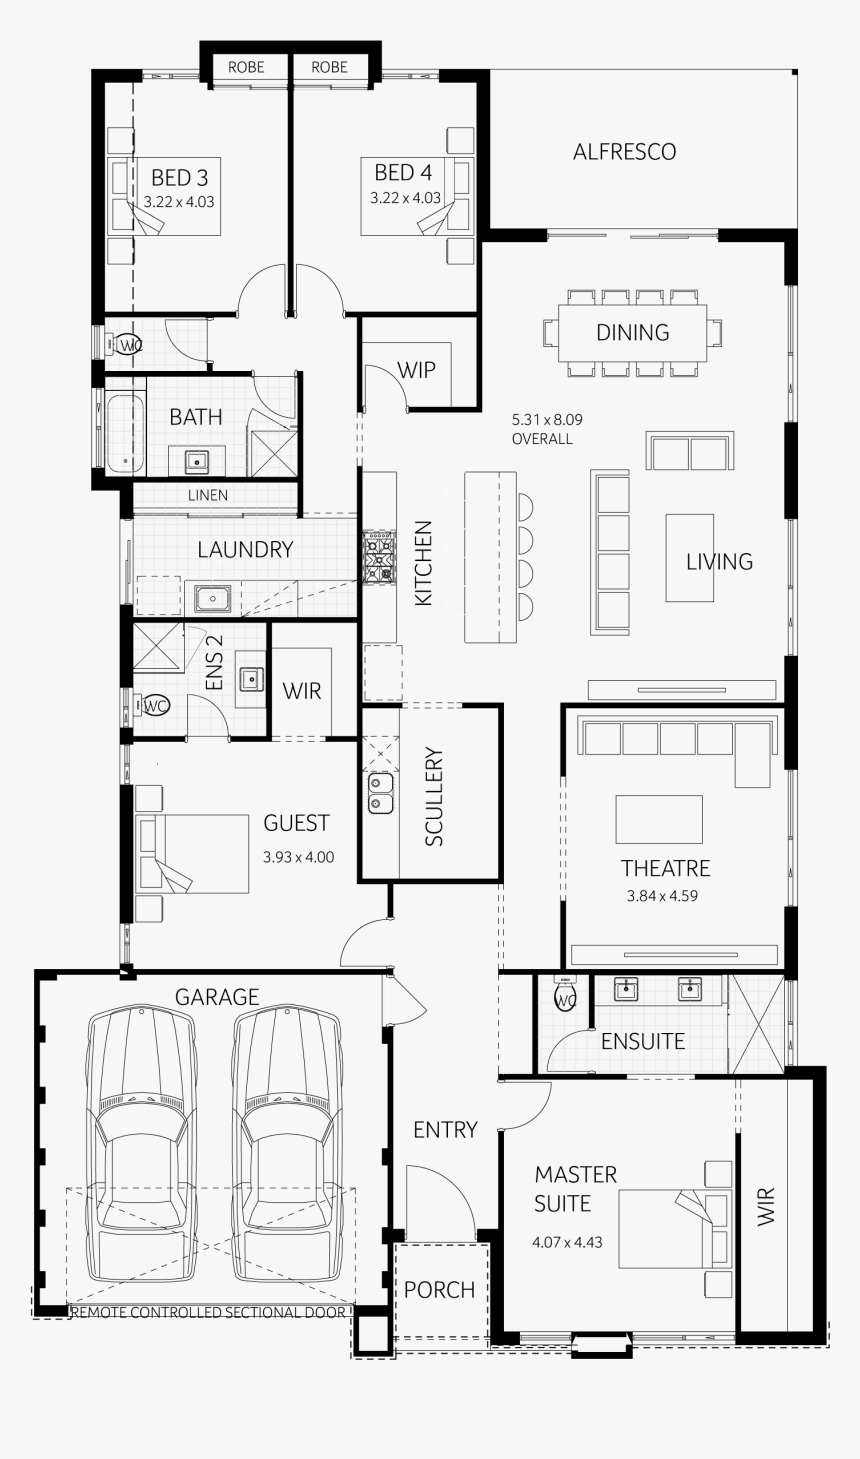 3 Bedroom House Plans With A Man Cave, HD Png Download - kindpng